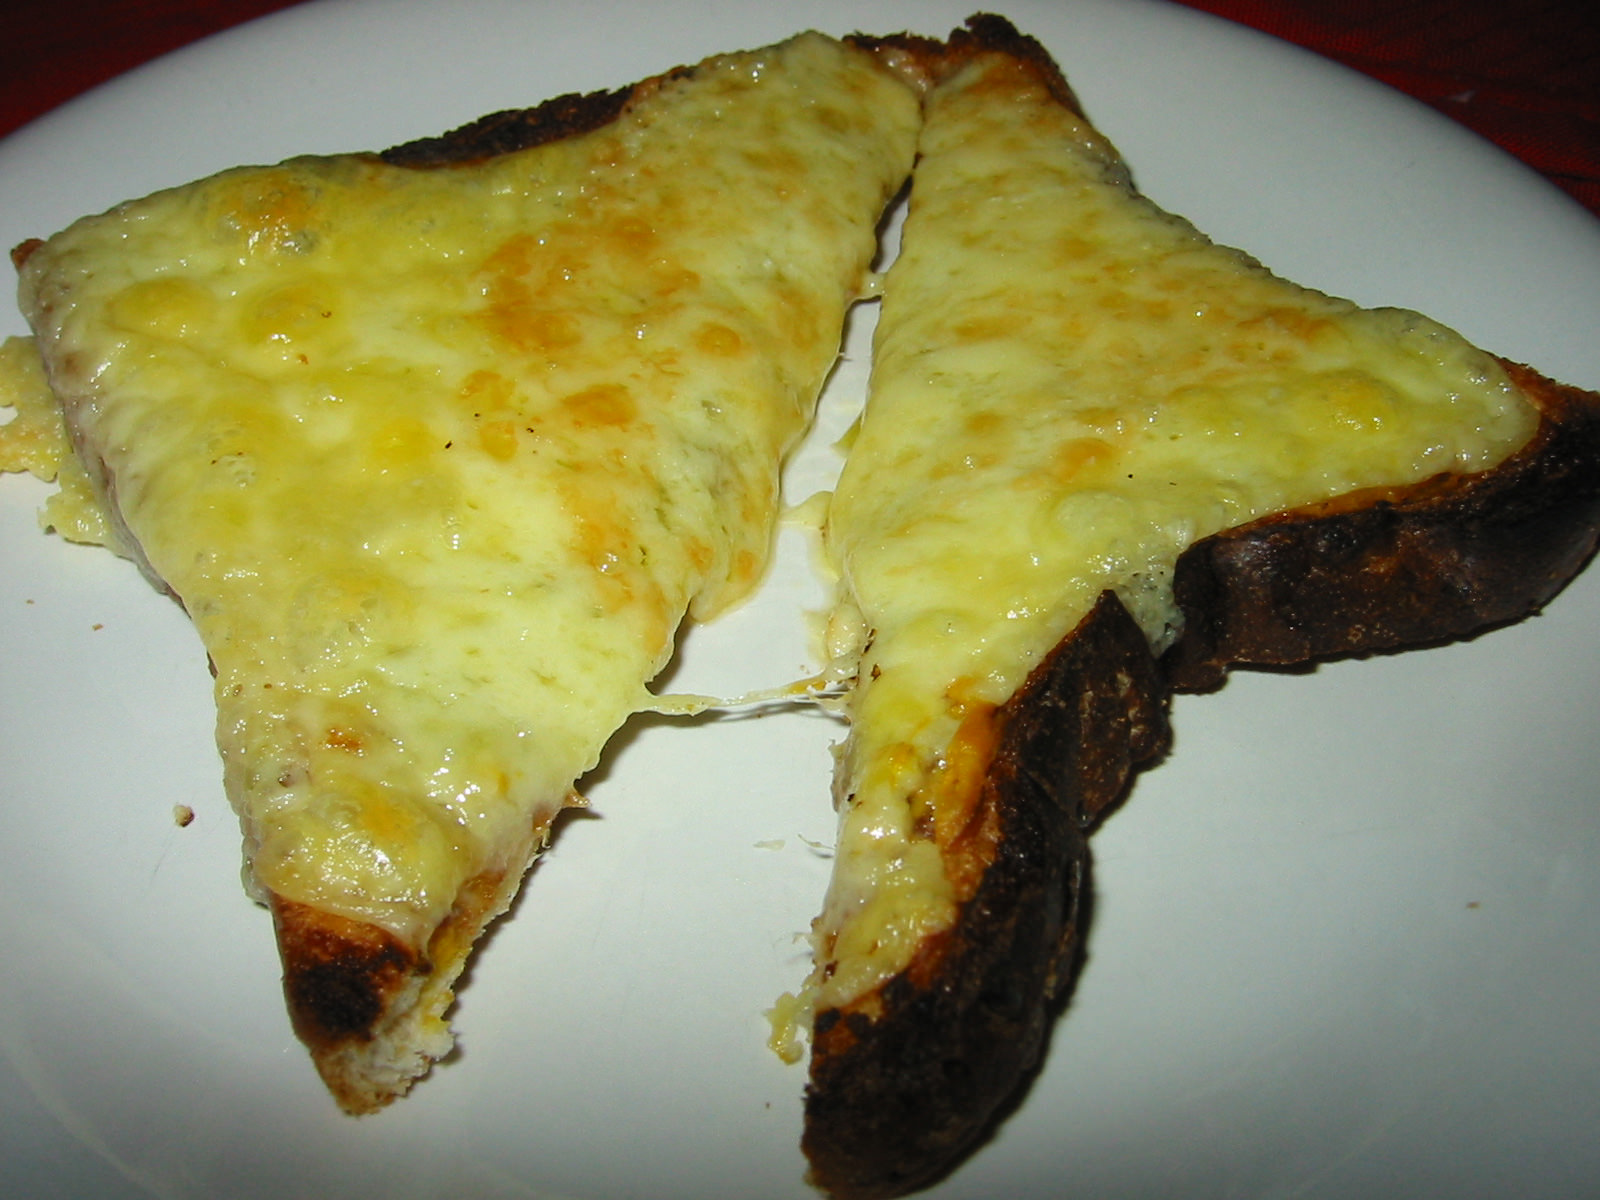 Cheese and mustard on toast